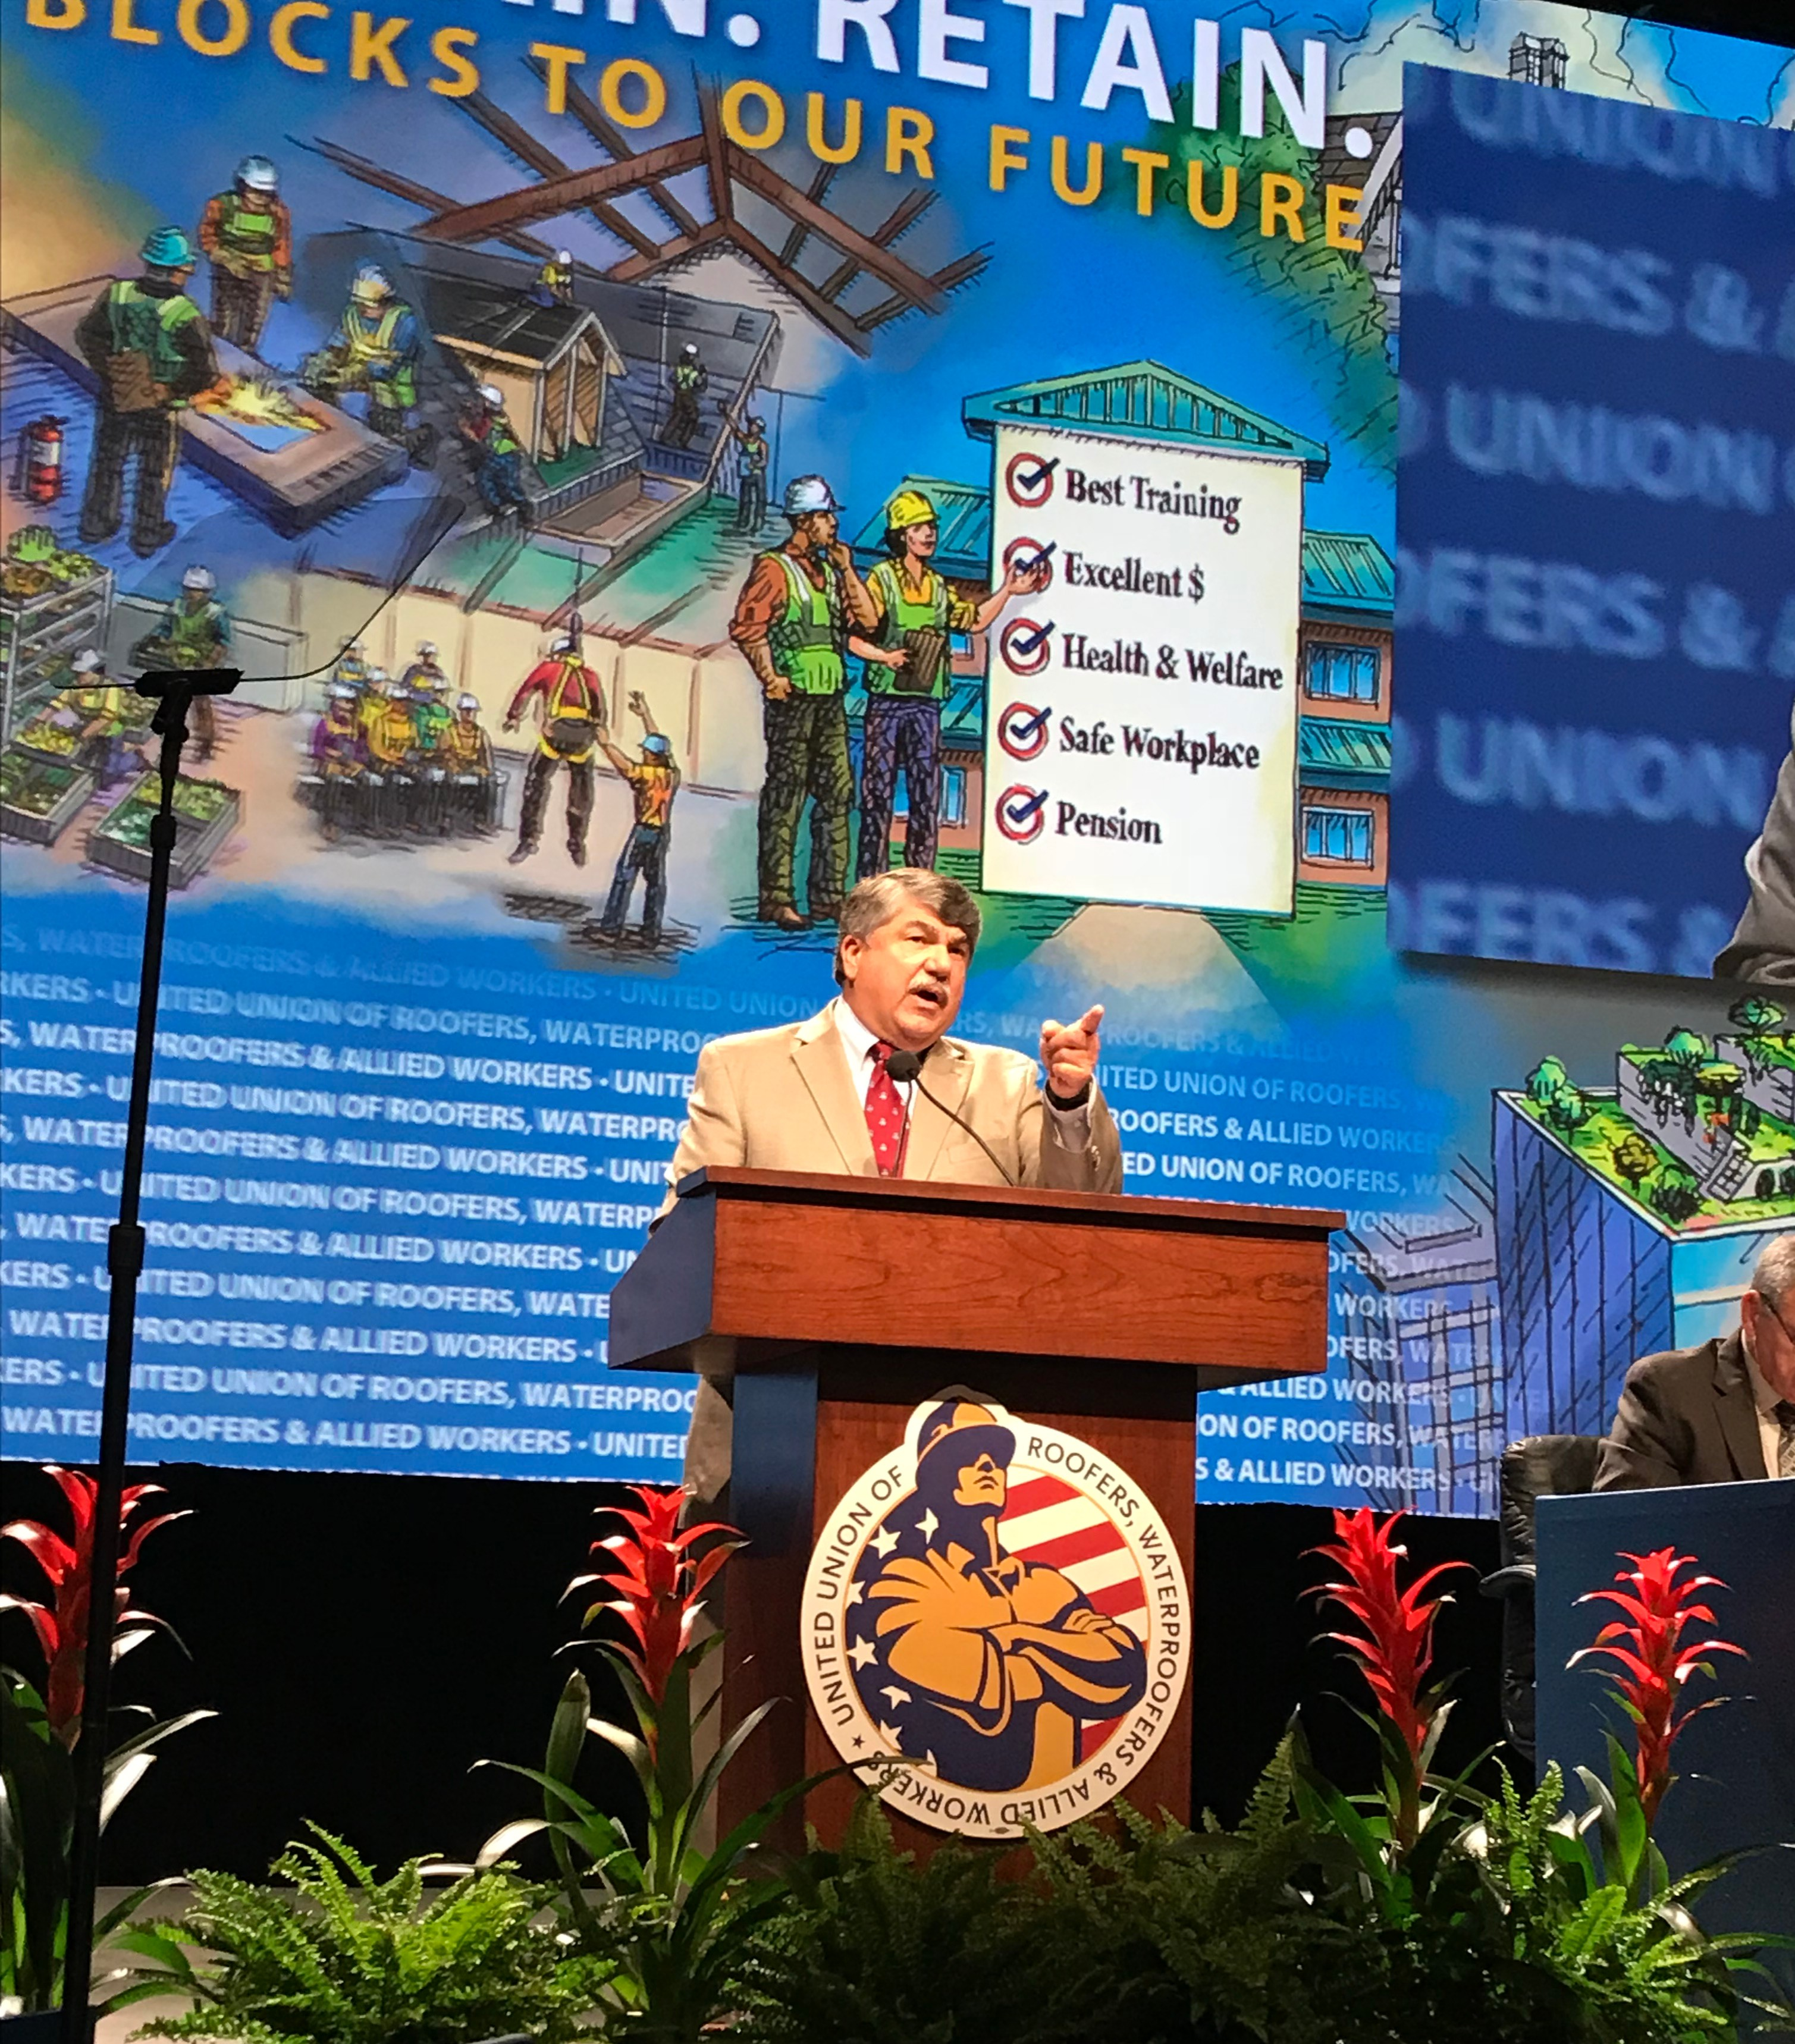 President Trumka addressed the Roofers and Waterproofers convention.